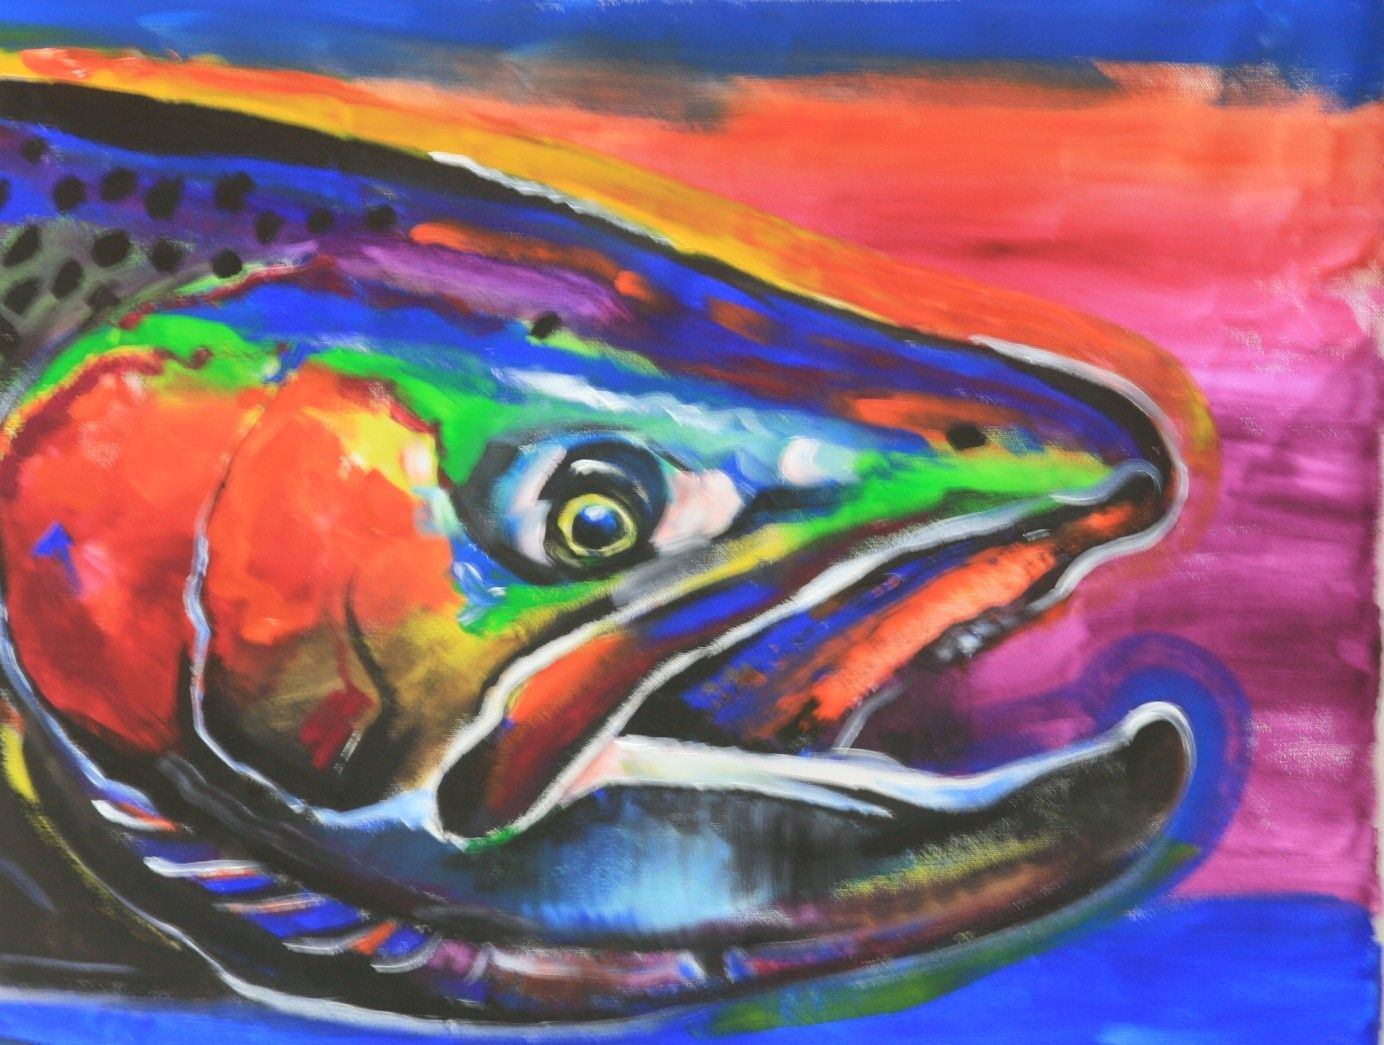 Nat royal art fly fishing trout trout fish pinterest for Fly fishing art